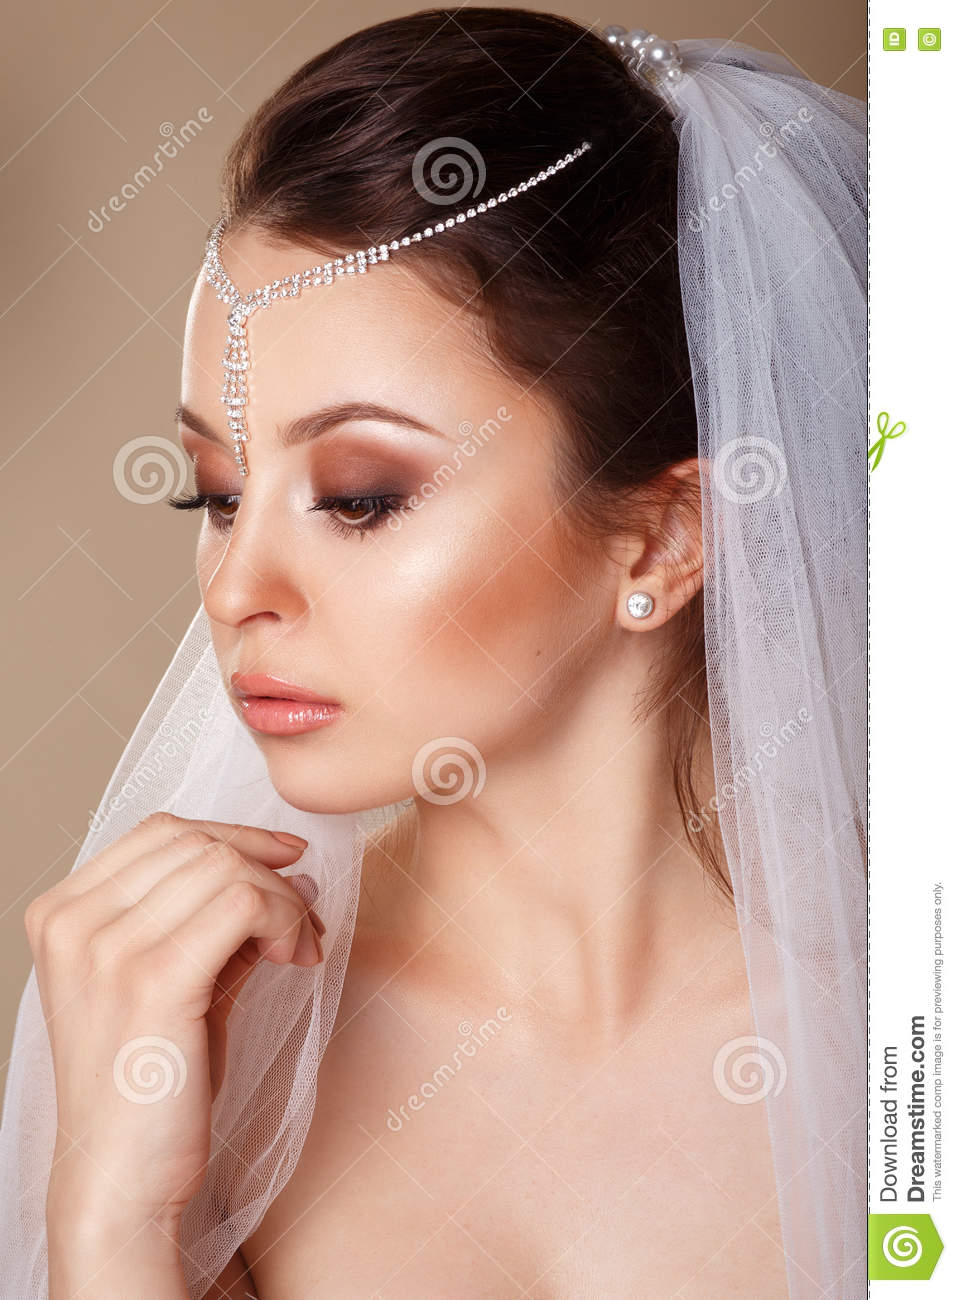 Beautiful Bride With Fashion Wedding Hairstyle With A Tiara In Her